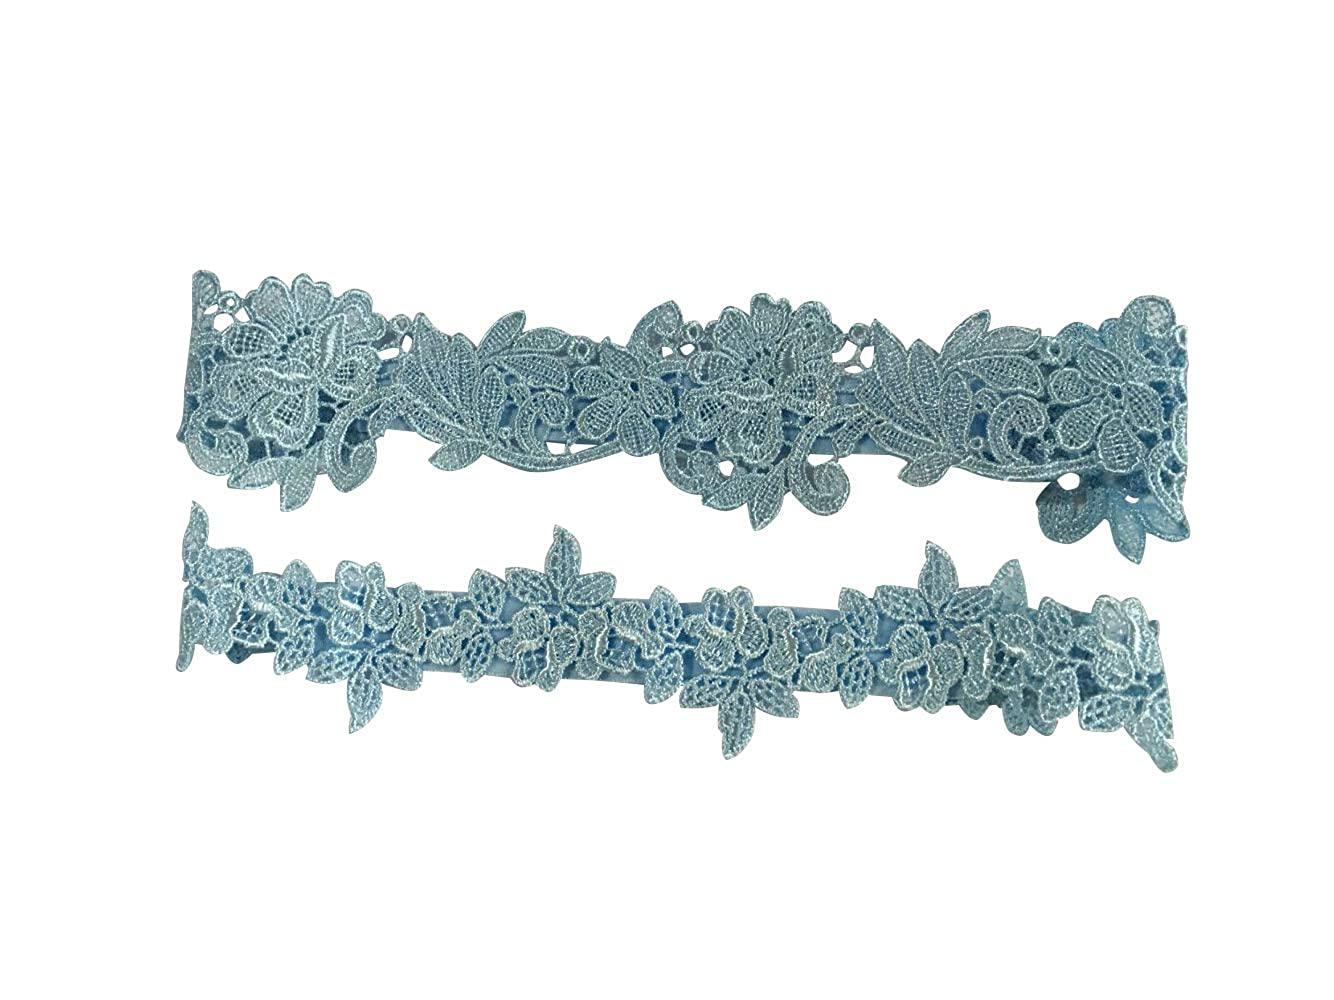 29c3443be Amazon.com  YuRongsxt Flower Leaf Style Garter Set Wedding Garter Set  Bridal Garter G08 (Blue)   Clothing